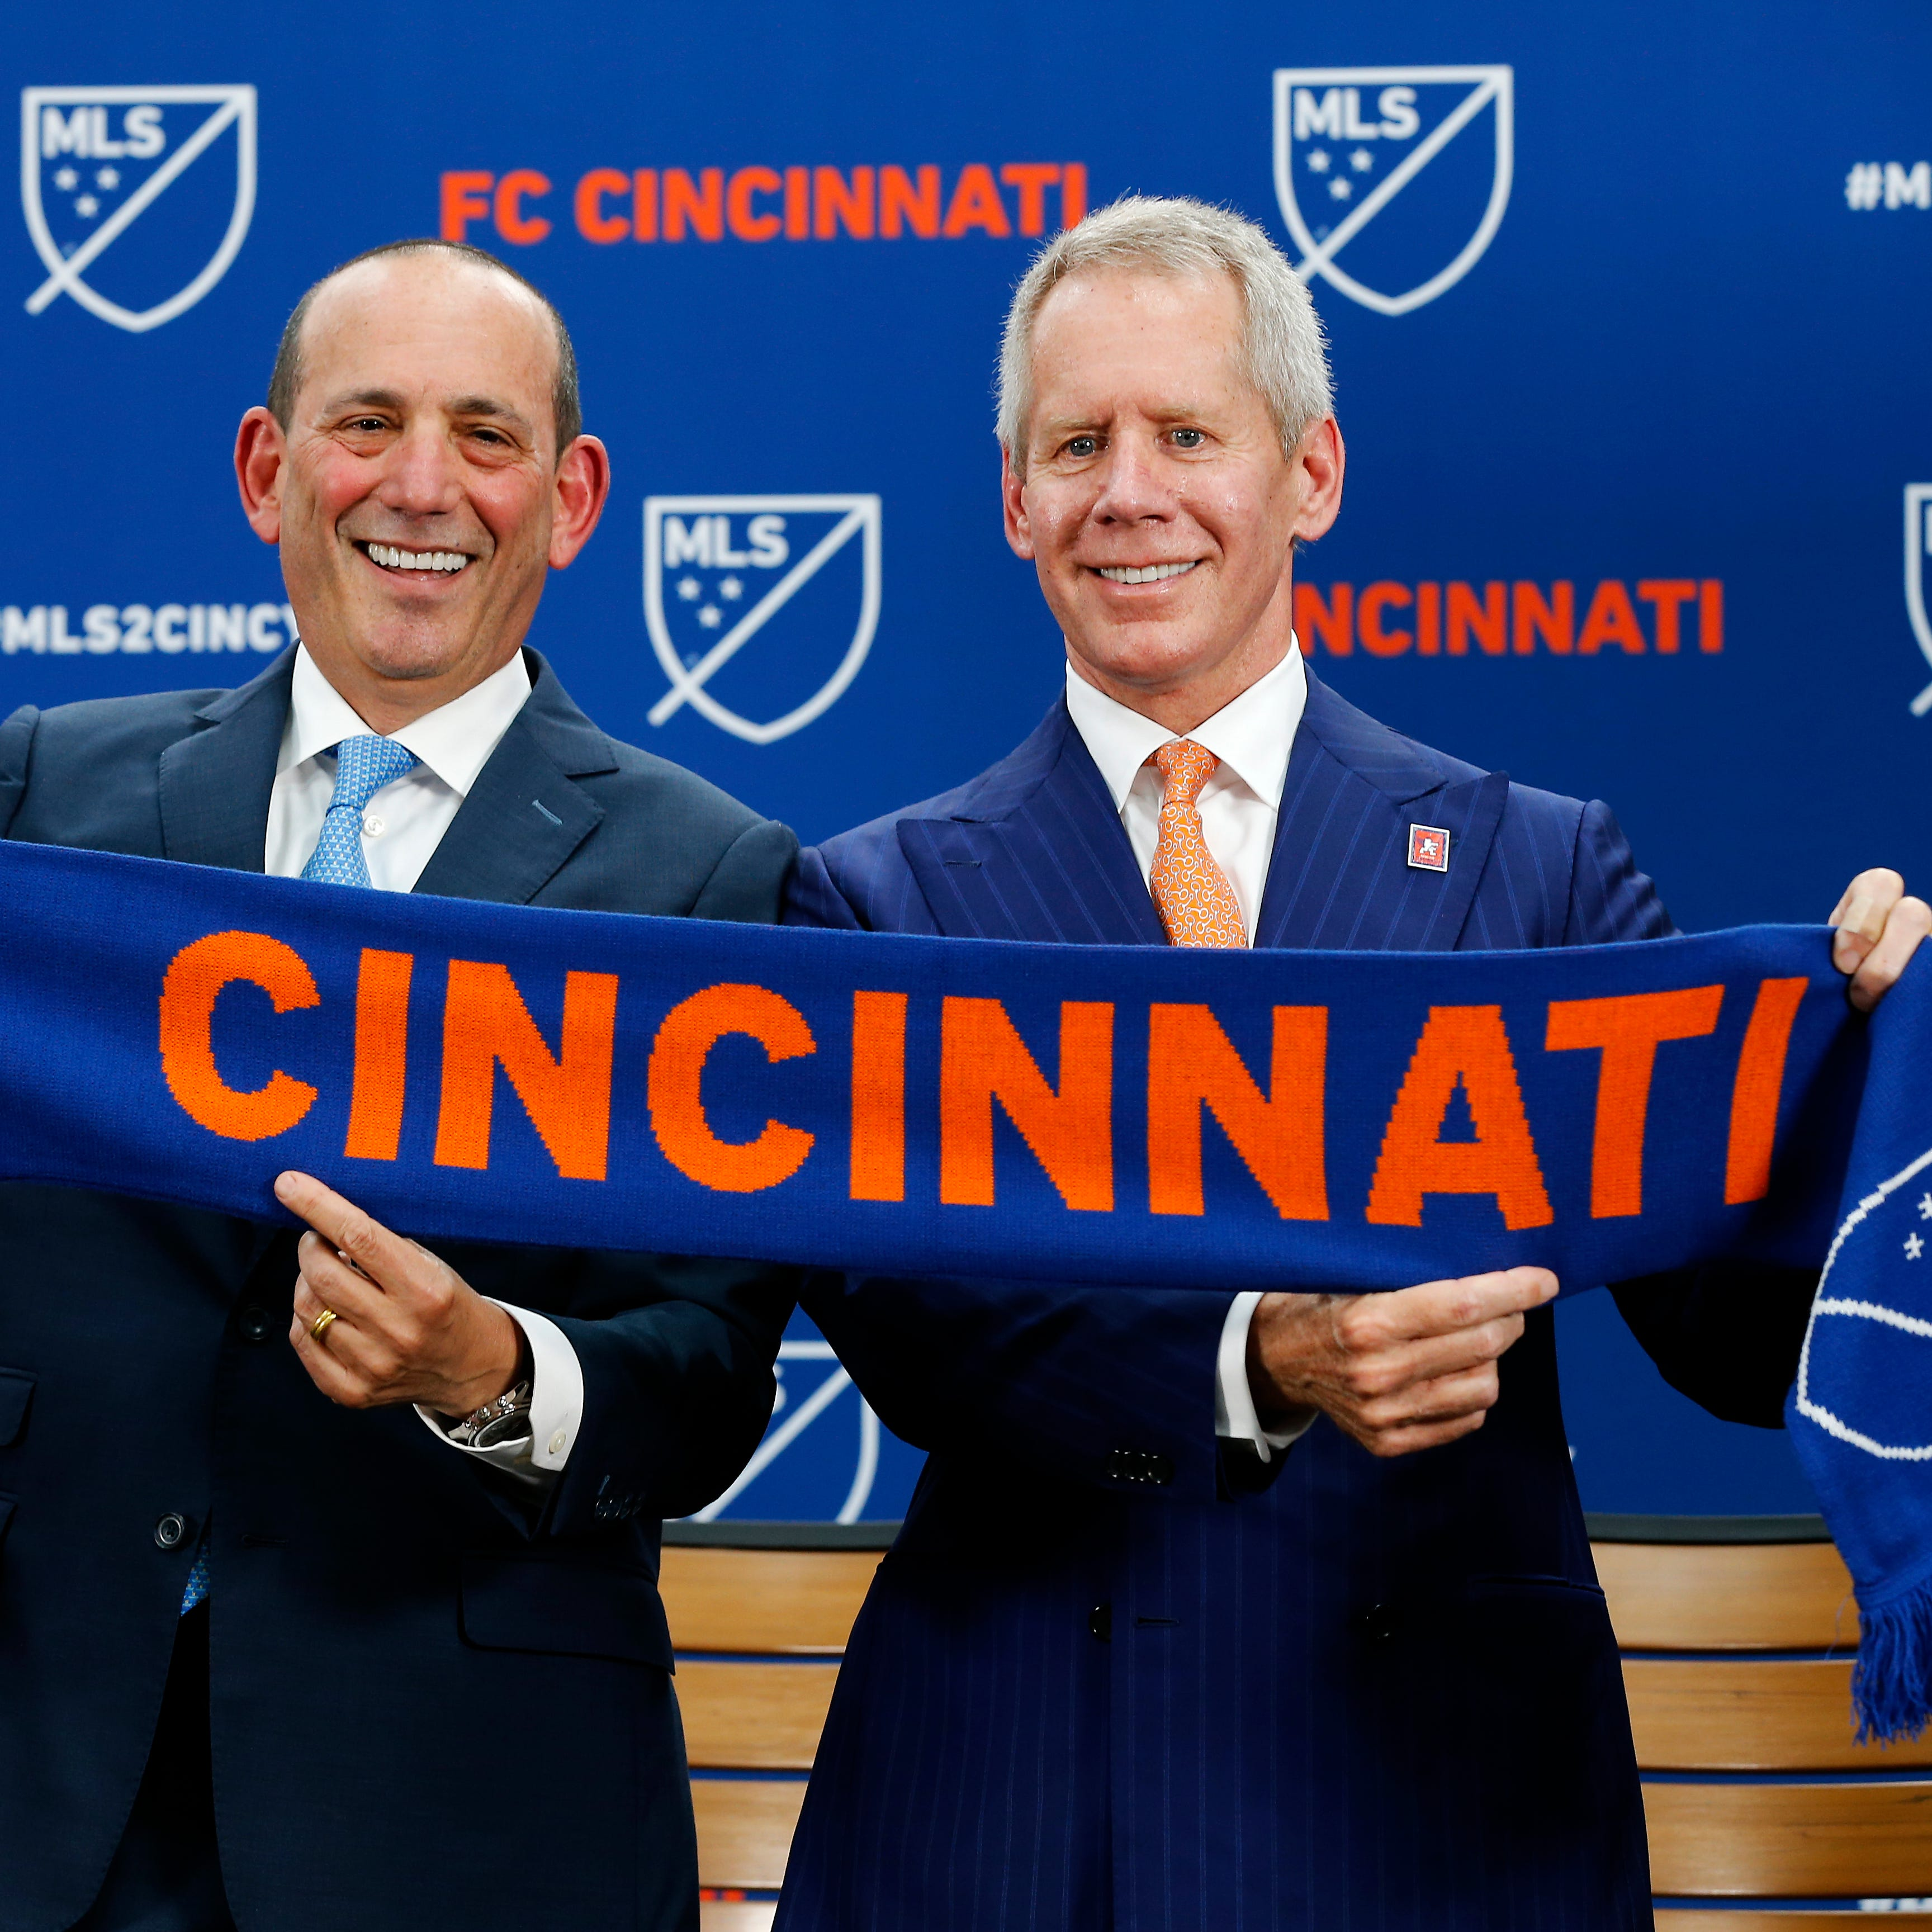 MLS announces plans to expand to 30 teams in coming years